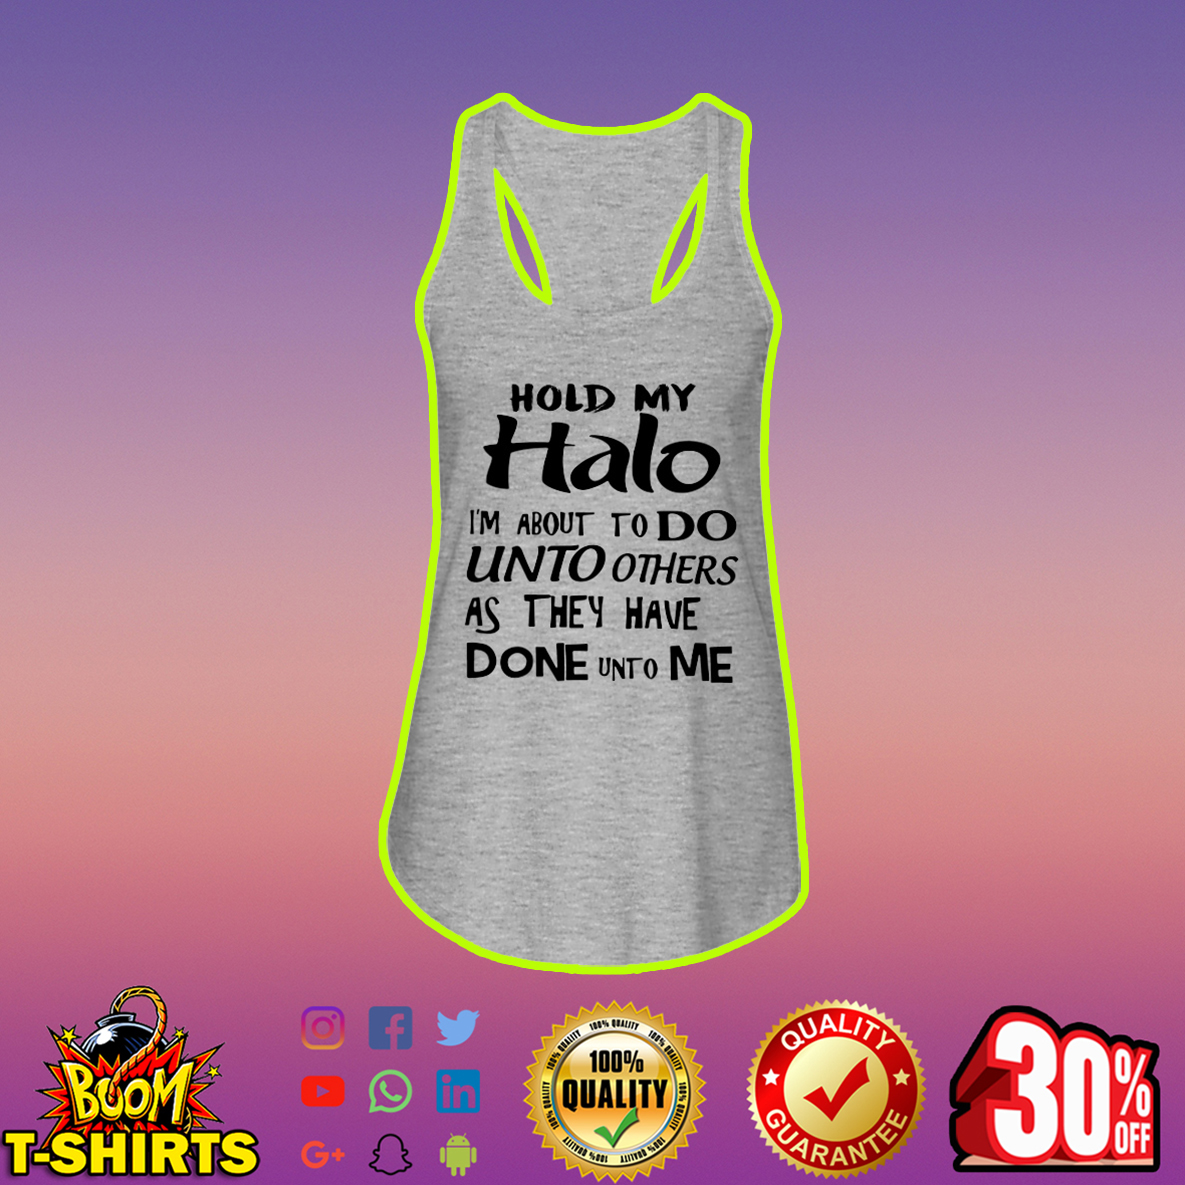 Hold my halo I'm about to do unto others as they have done unto me flowy tank